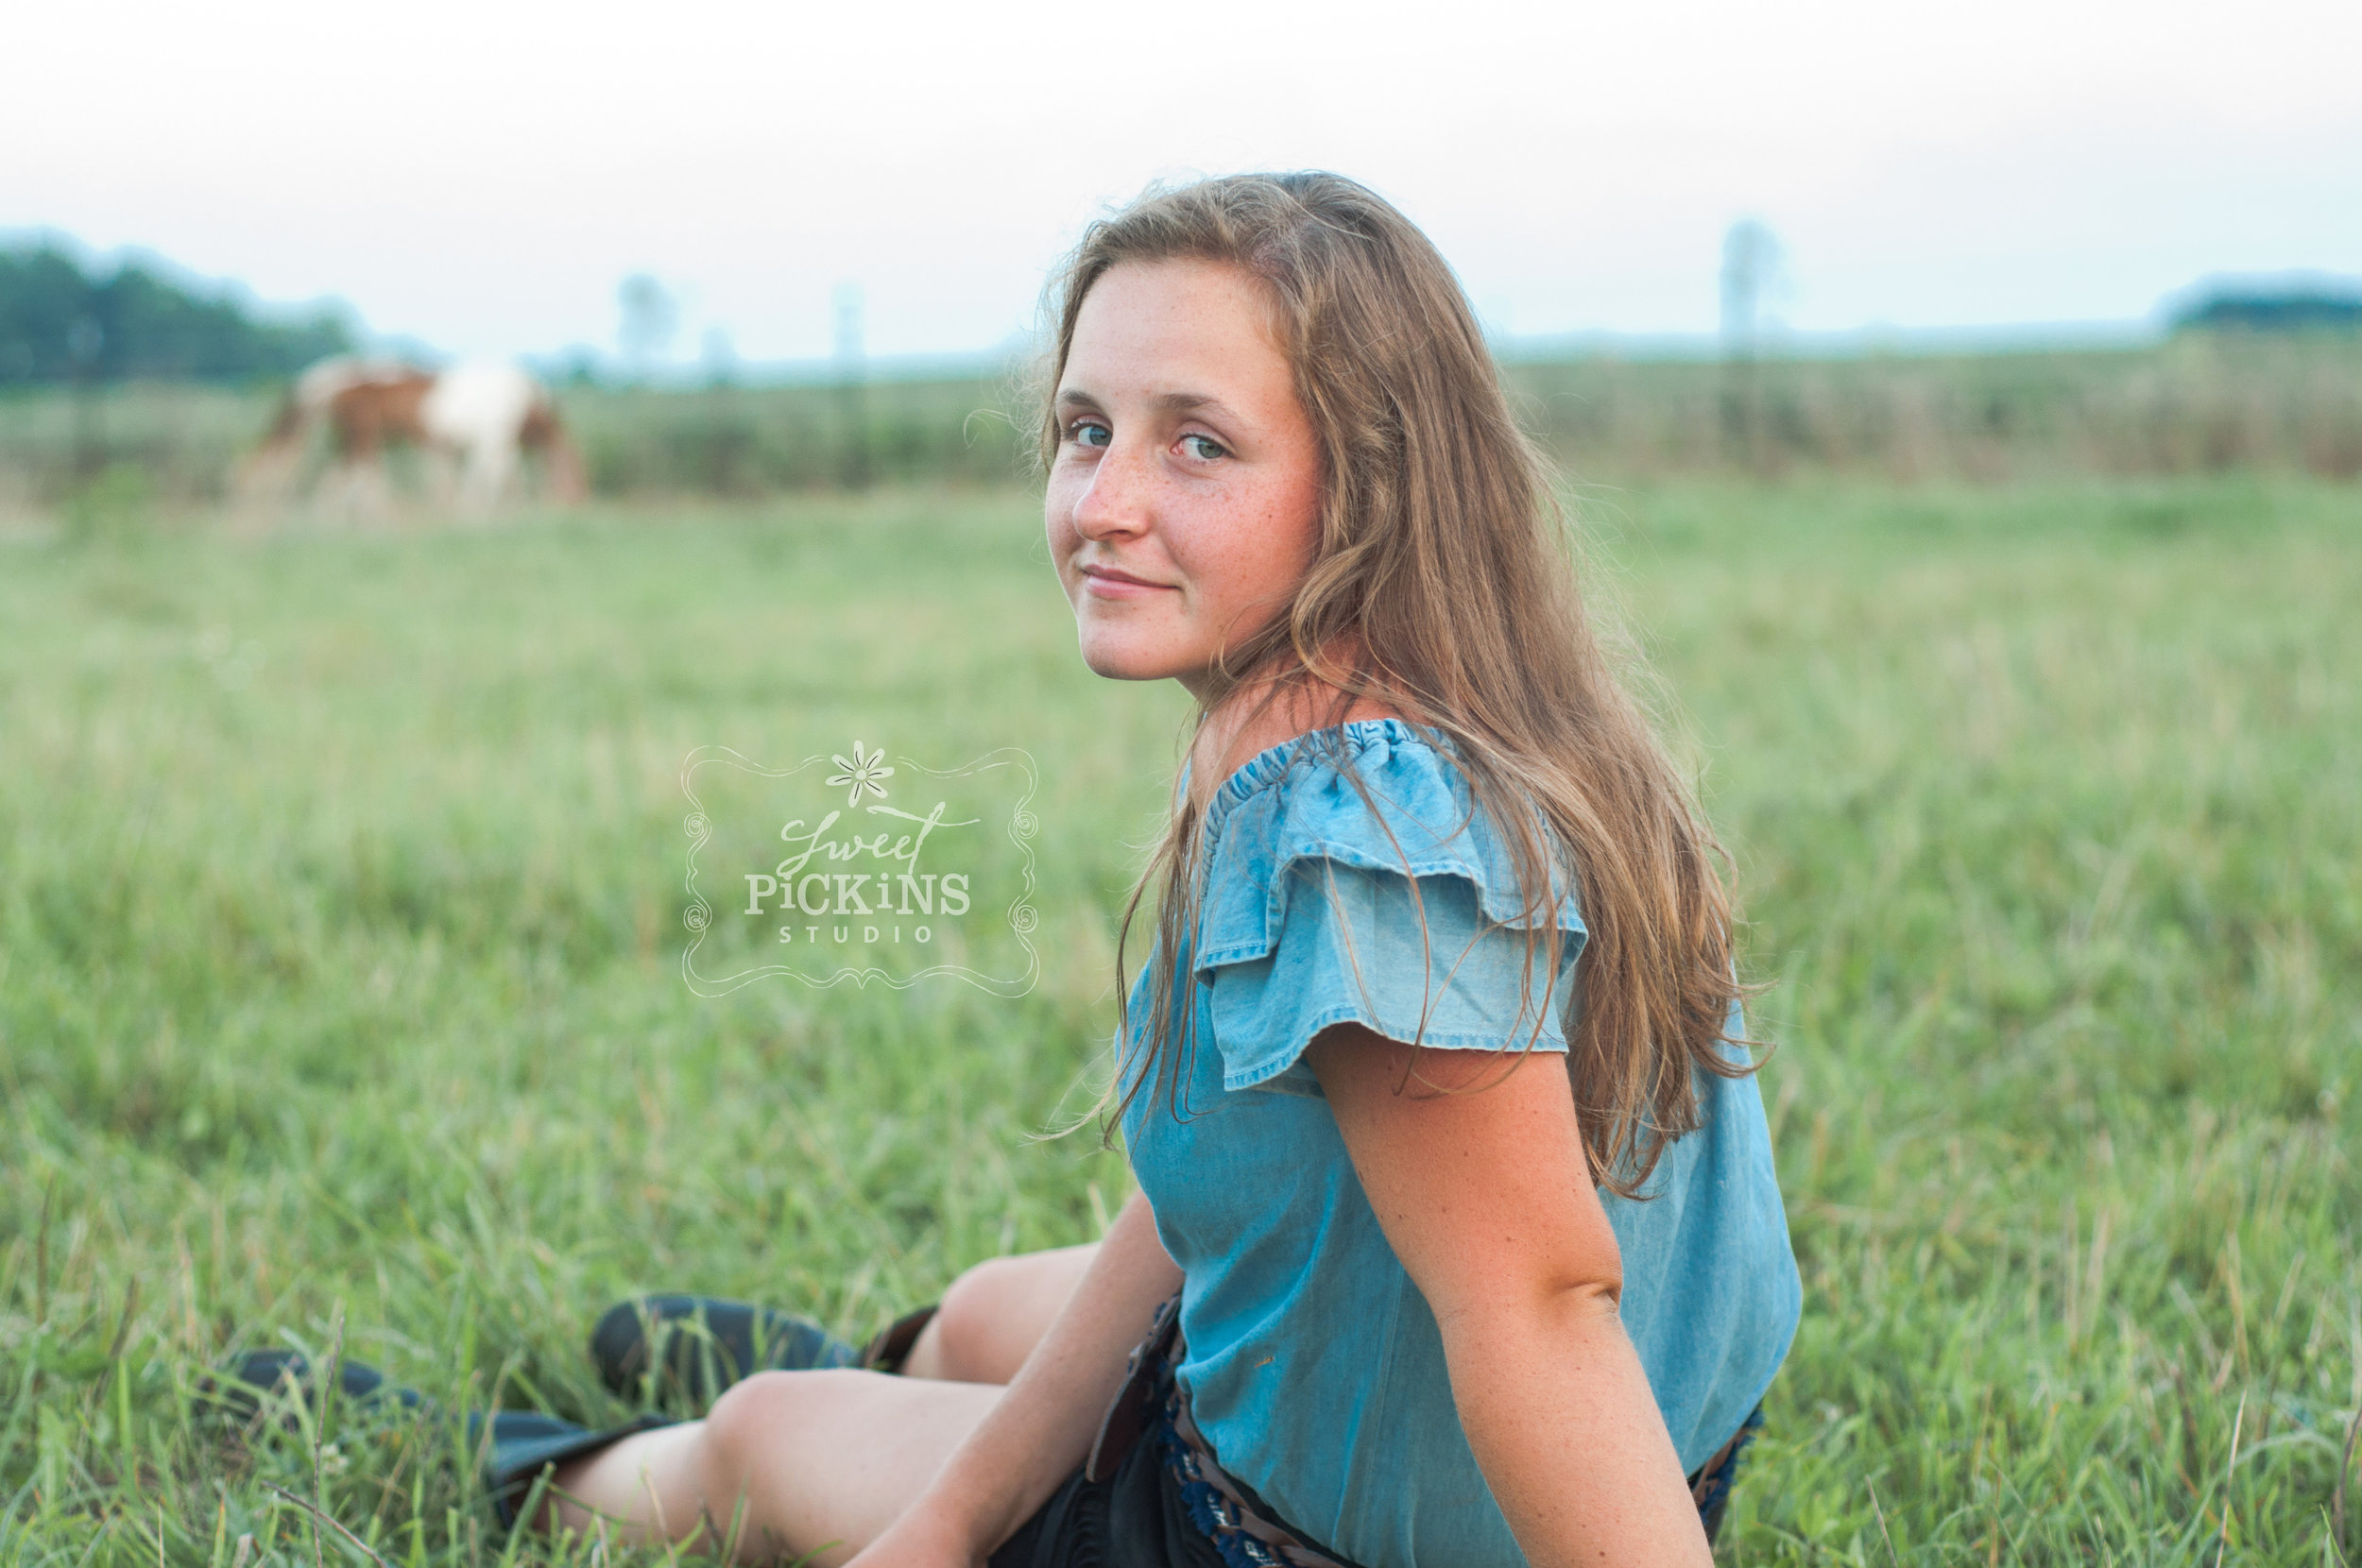 Peru, Indiana Horse Lifestyle Photography Session by Sweet Pickins Studio